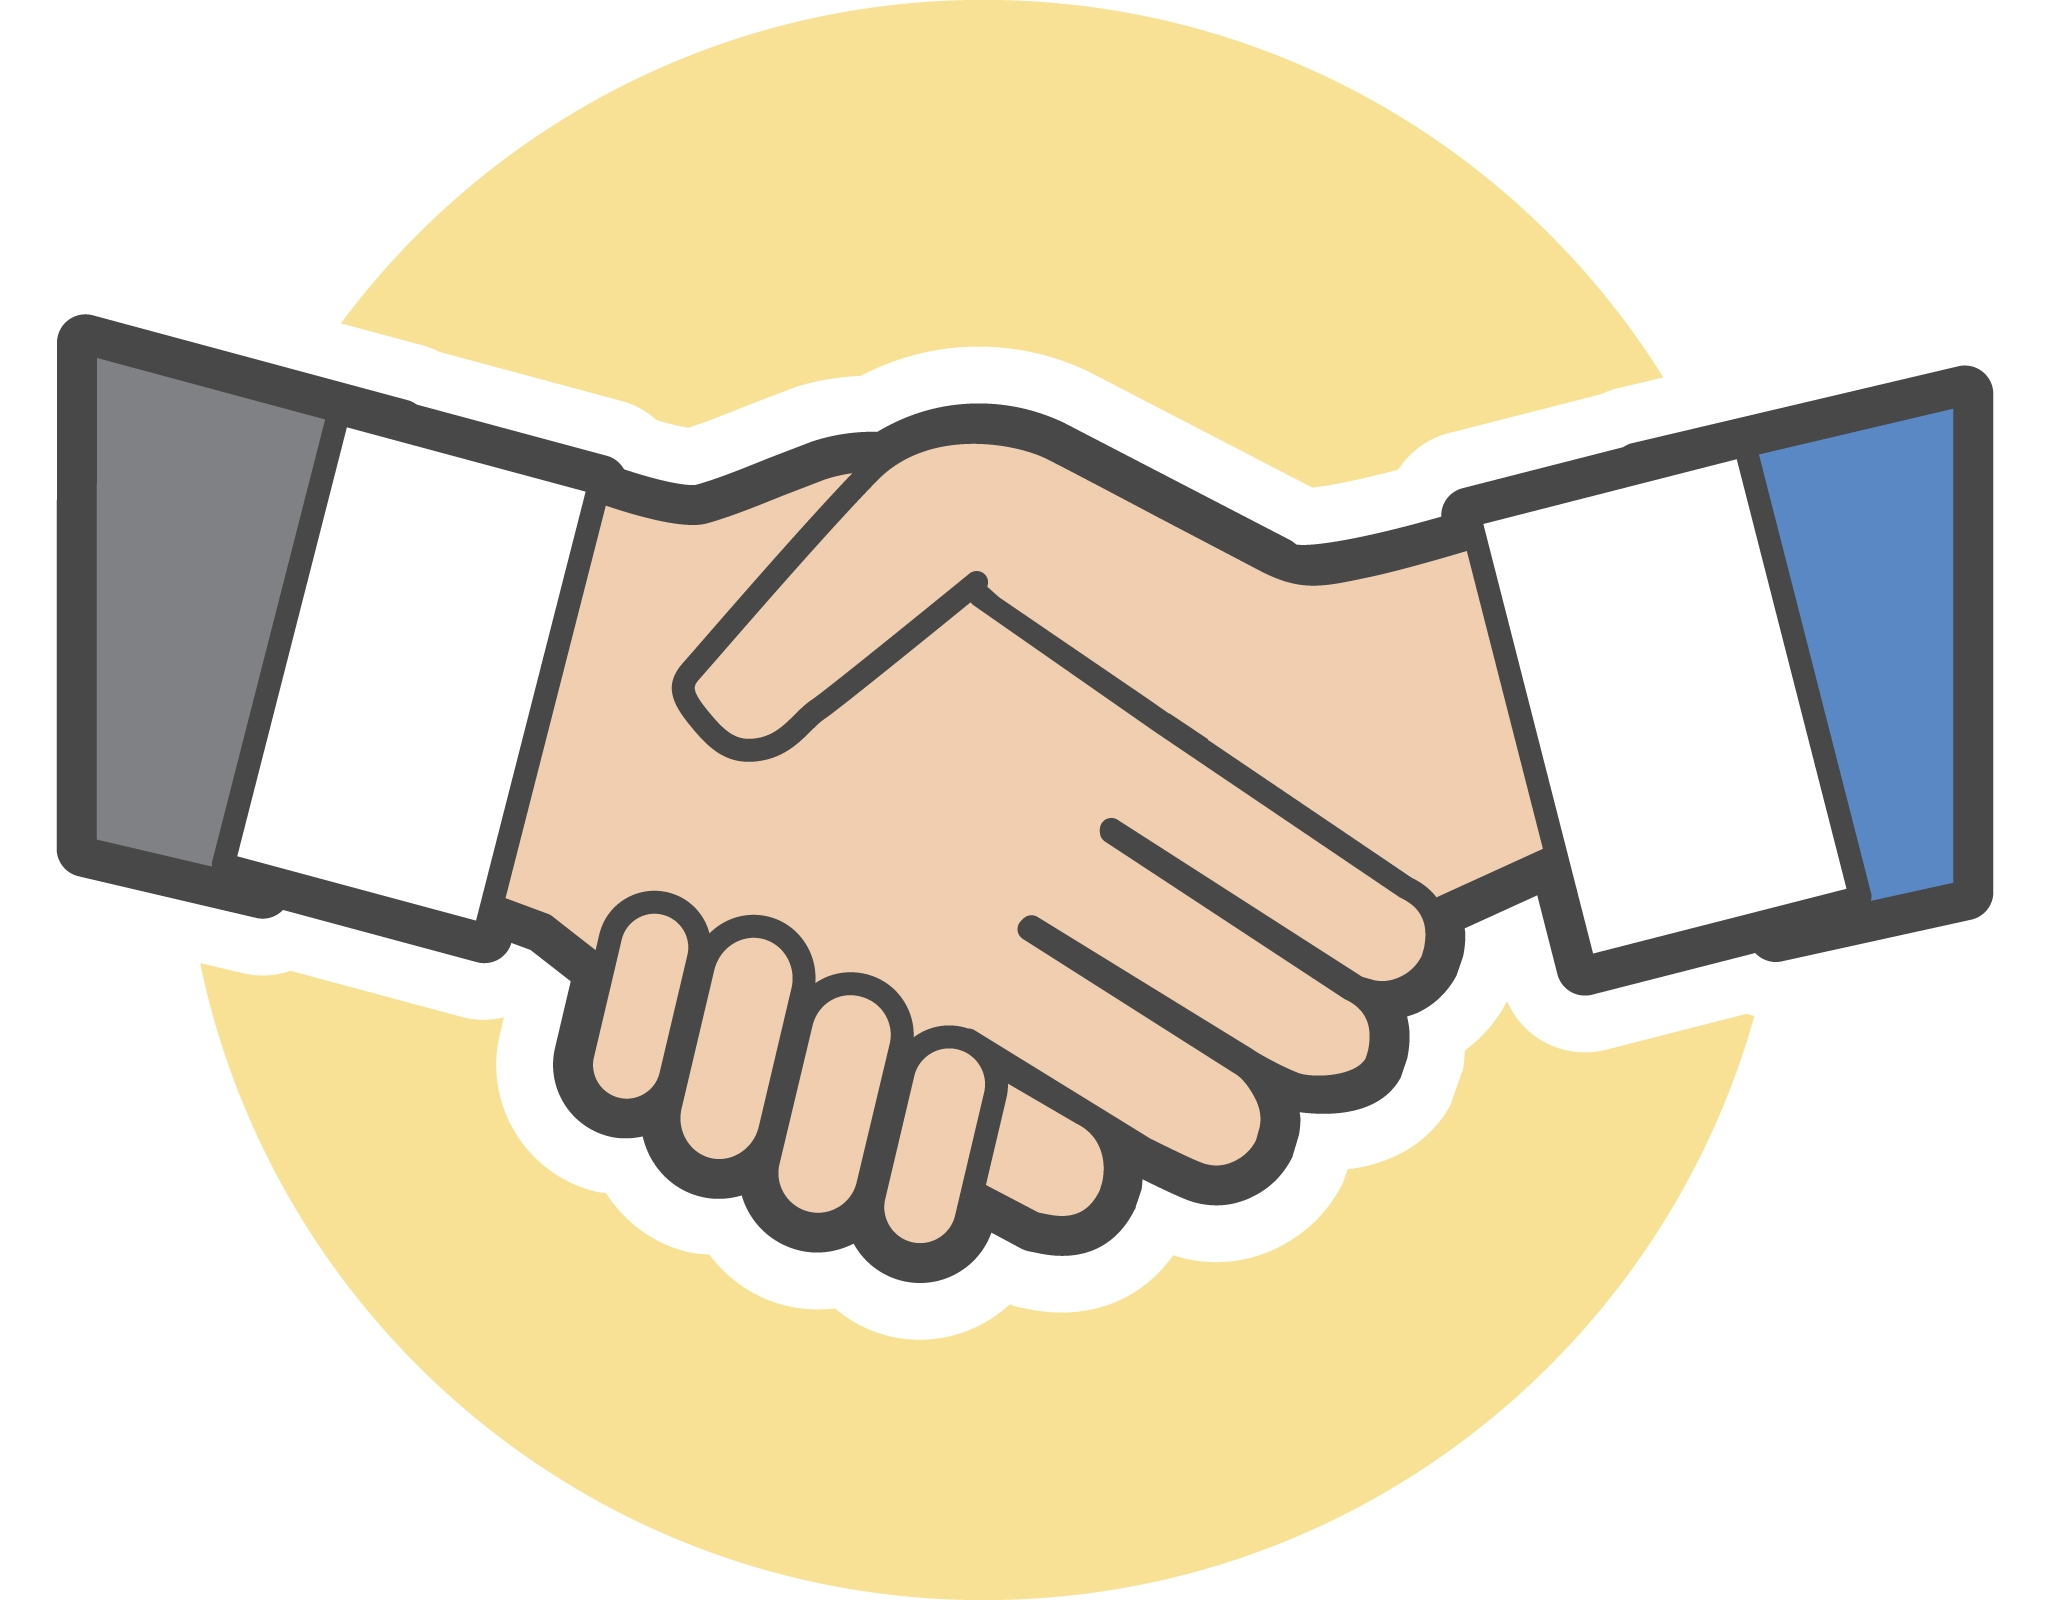 clip art library library Handshake clipart team. Transparent free for